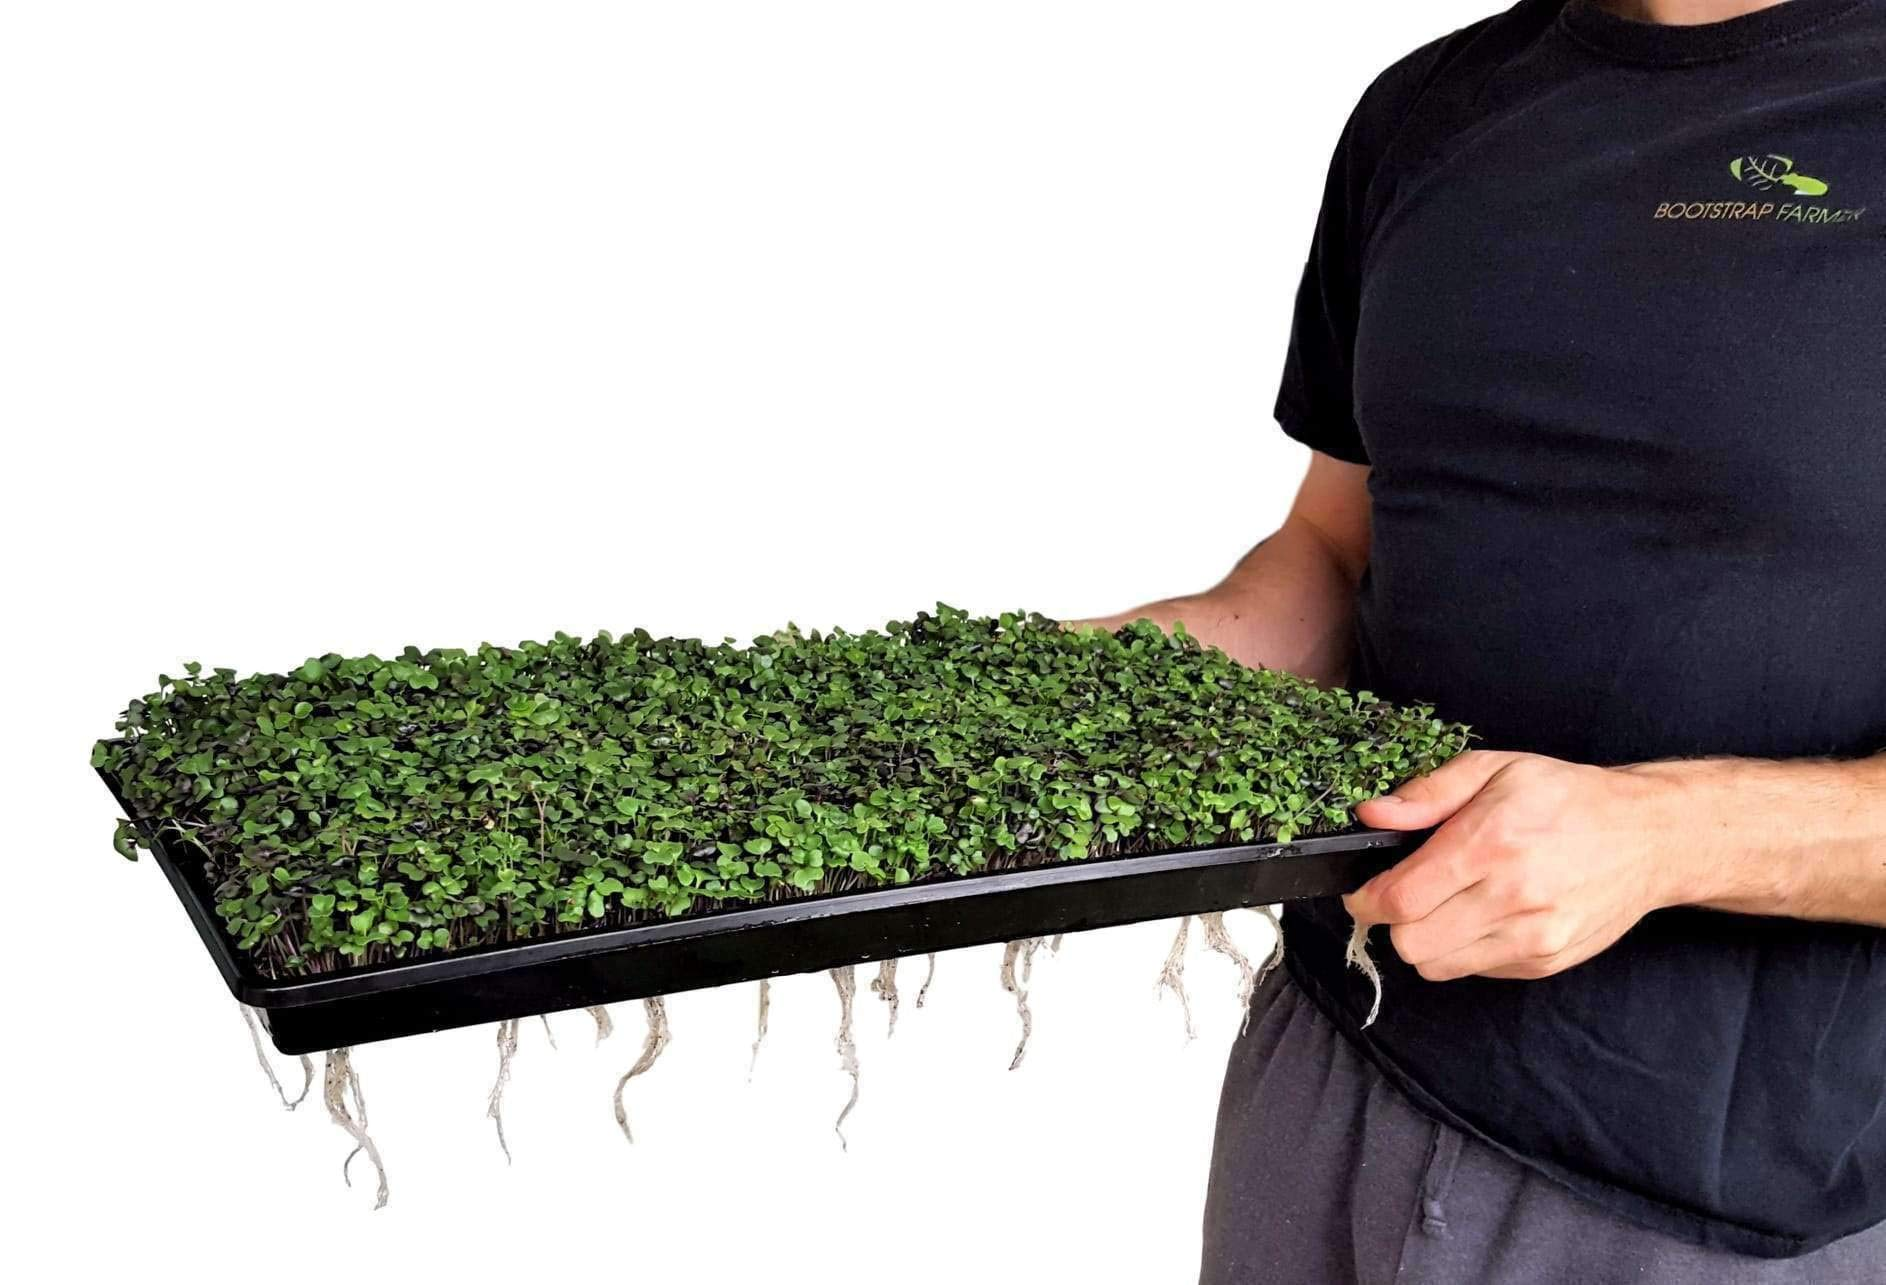 Bootstrap Farmer Microgreen Tray Hobby Starter Bundle 2 of Each - Extra Strength Microgreen Tray with Holes, Shallow 1020 No Holes, and Humidity Domes